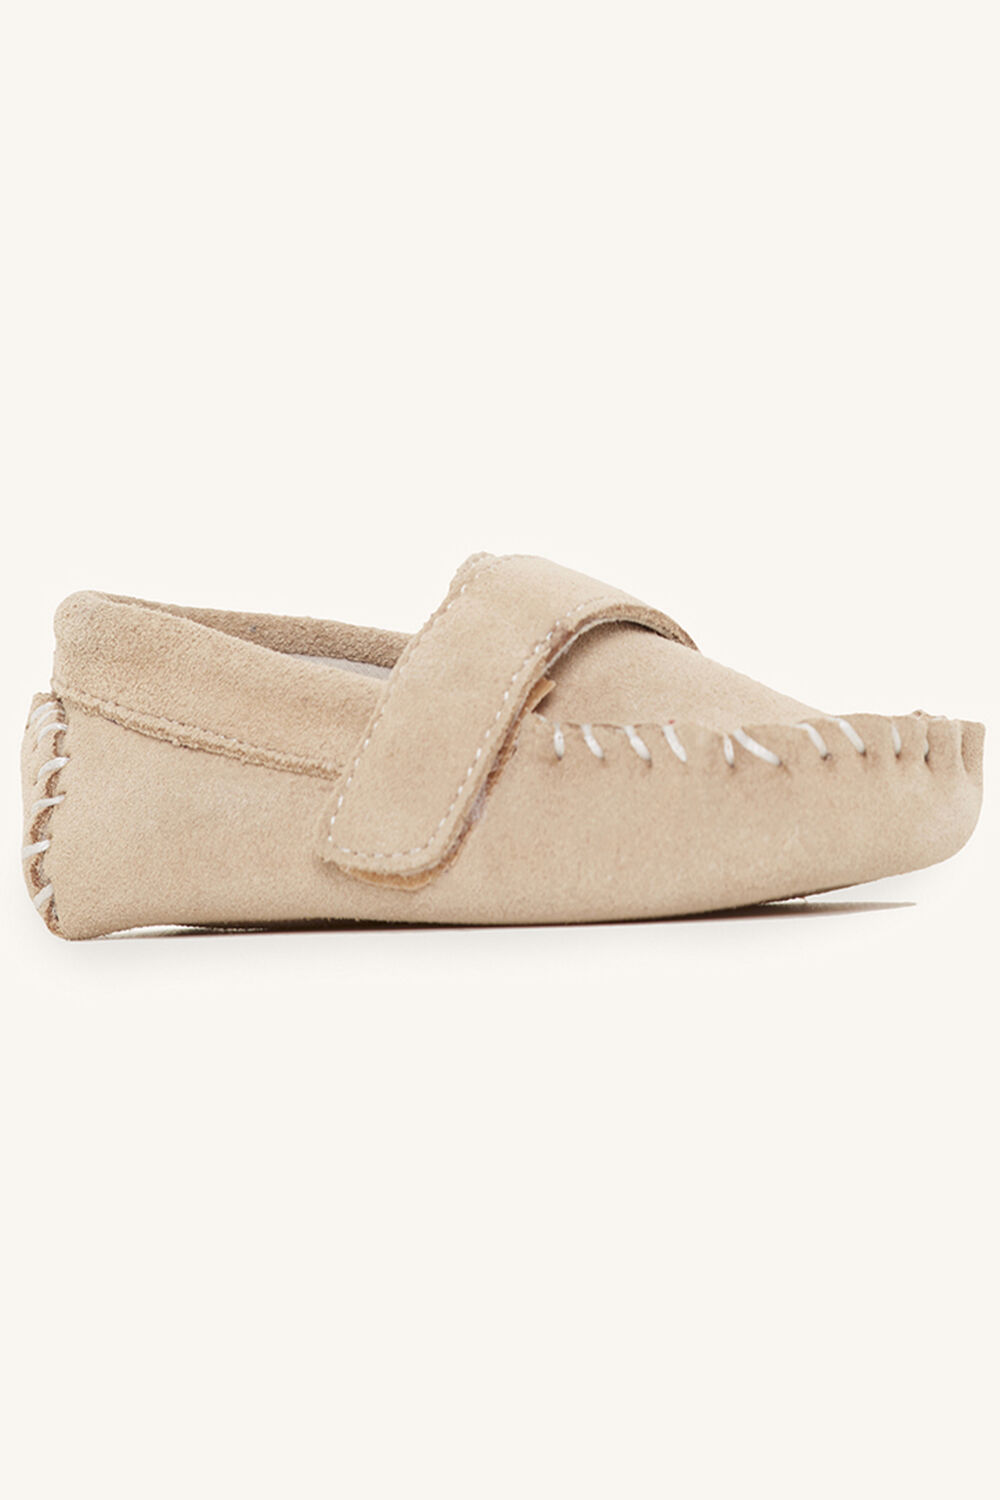 BENNY BABY LOAFER SHOE in colour SAND